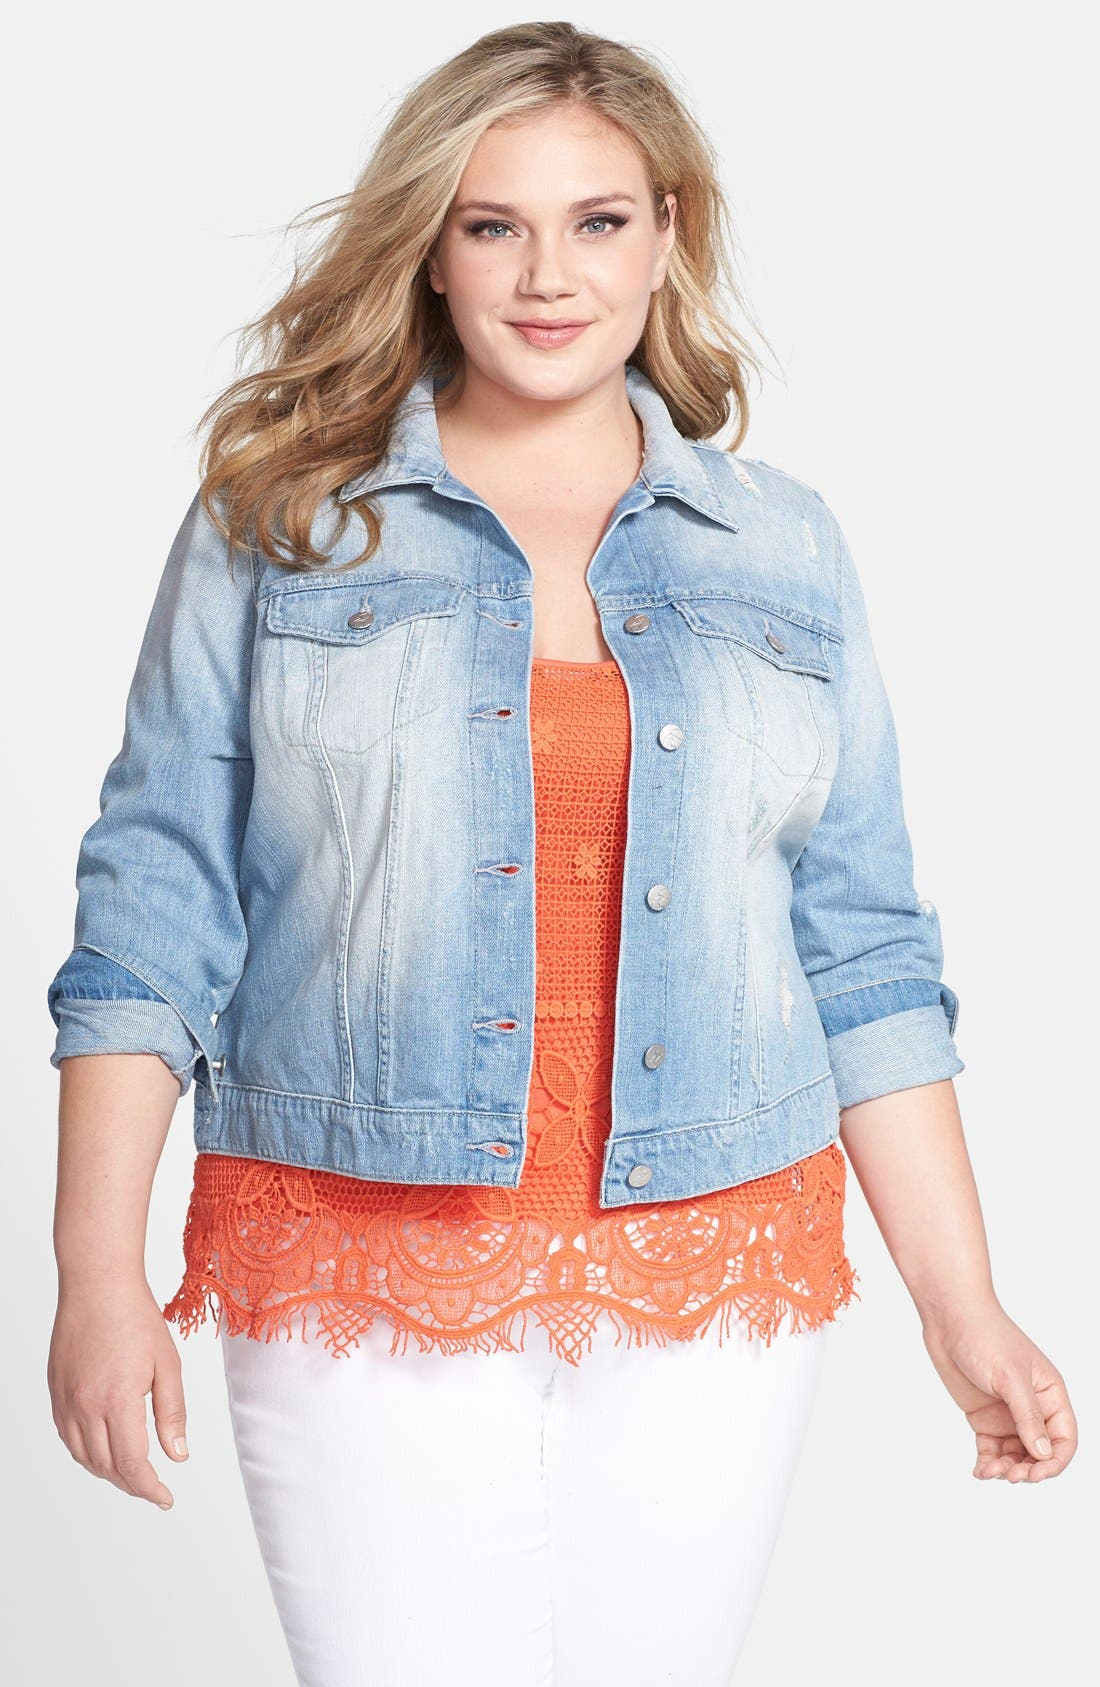 Alternate Image 1 Selected - Jessica Simpson 'Pixie' Denim Jacket (Plus Size)